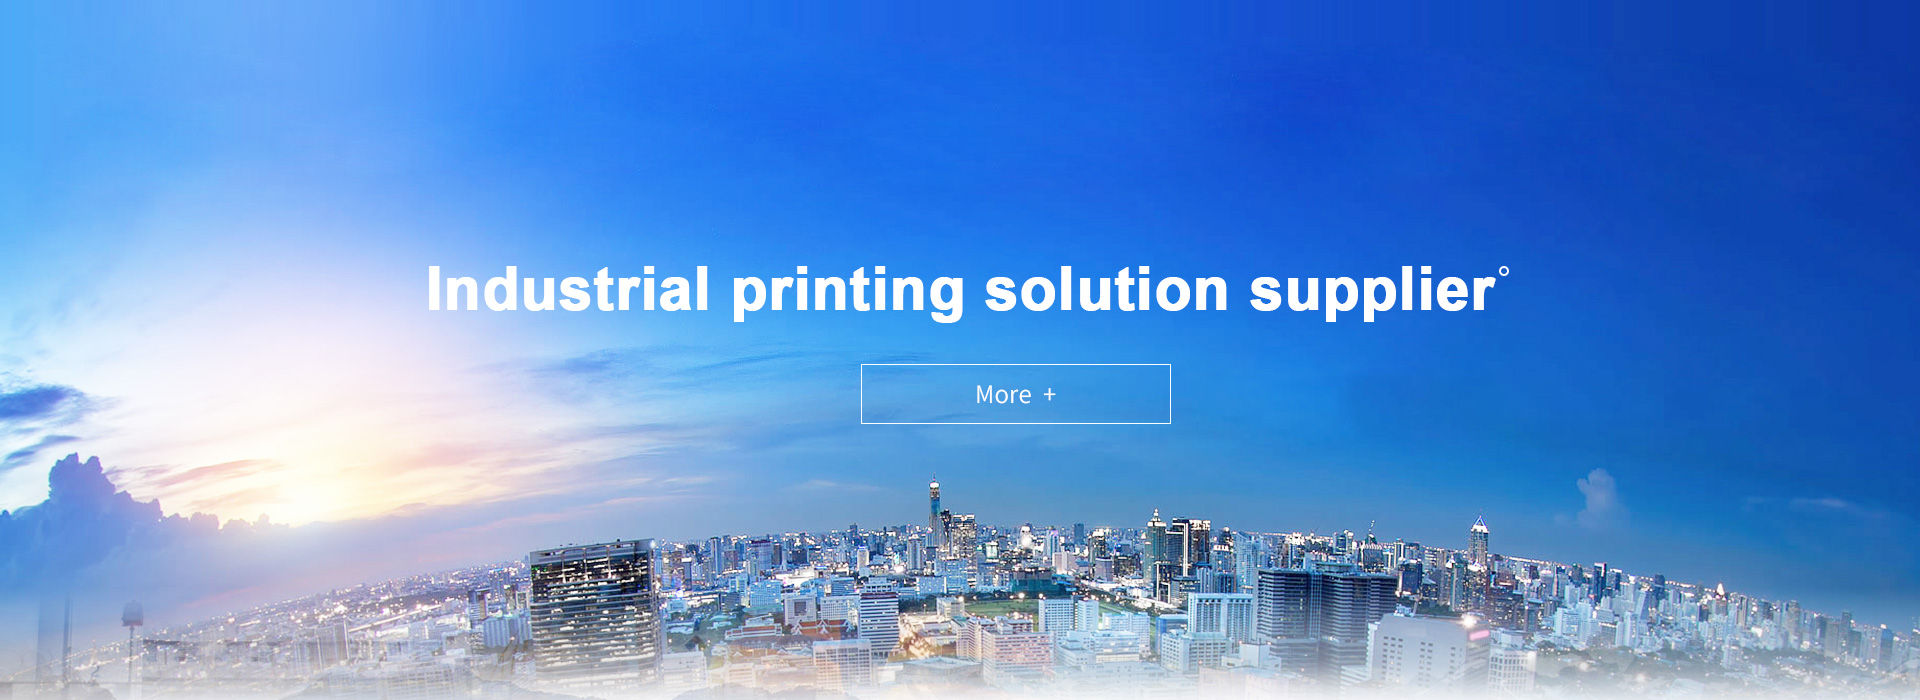 Industrial printing solutions